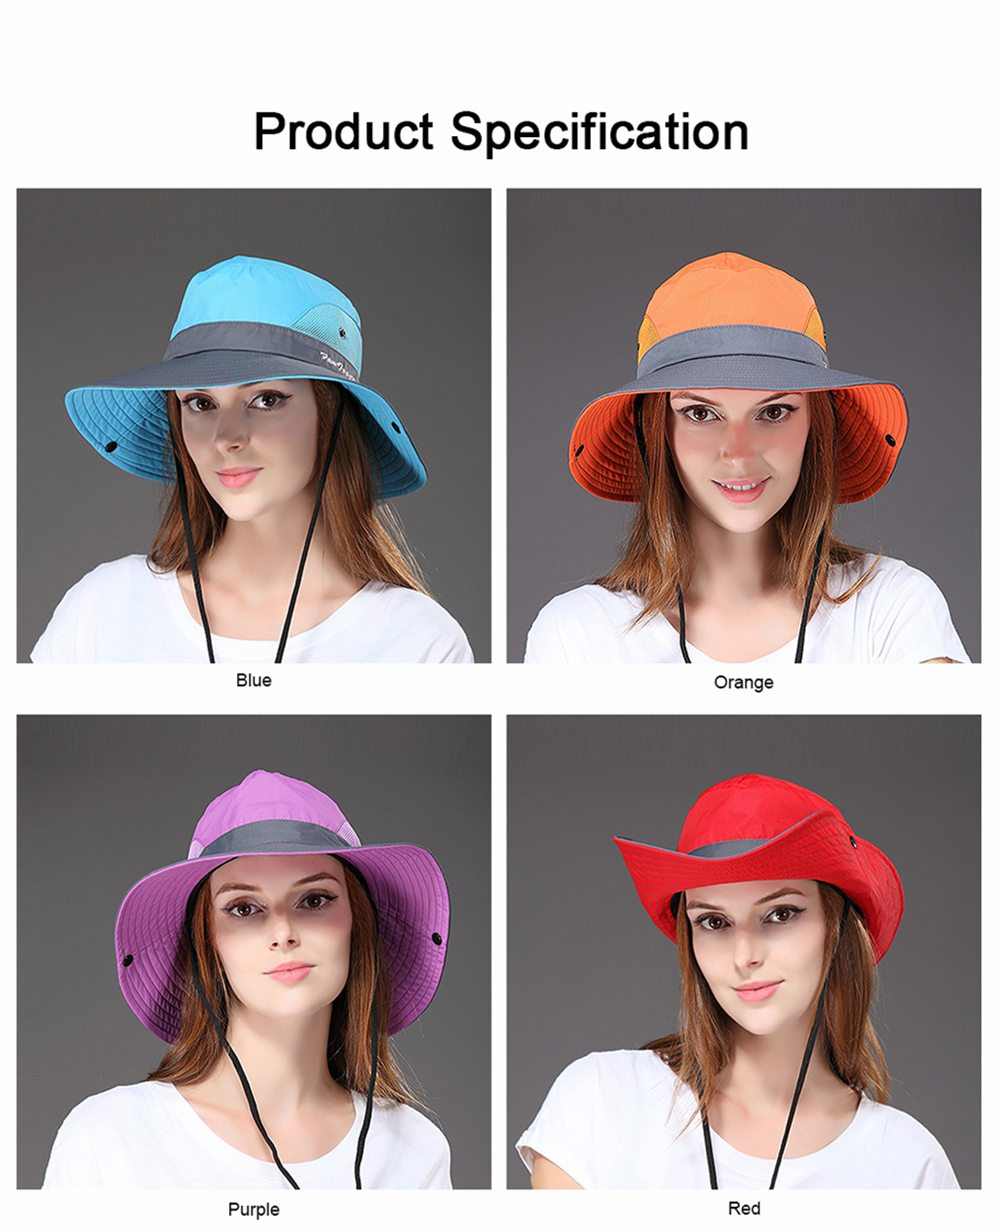 Foldable Bucket Hat for Women, Sunbonnet Sun Hat for Summer, Wind-proof Sun-proof for Outdoor Activities 6